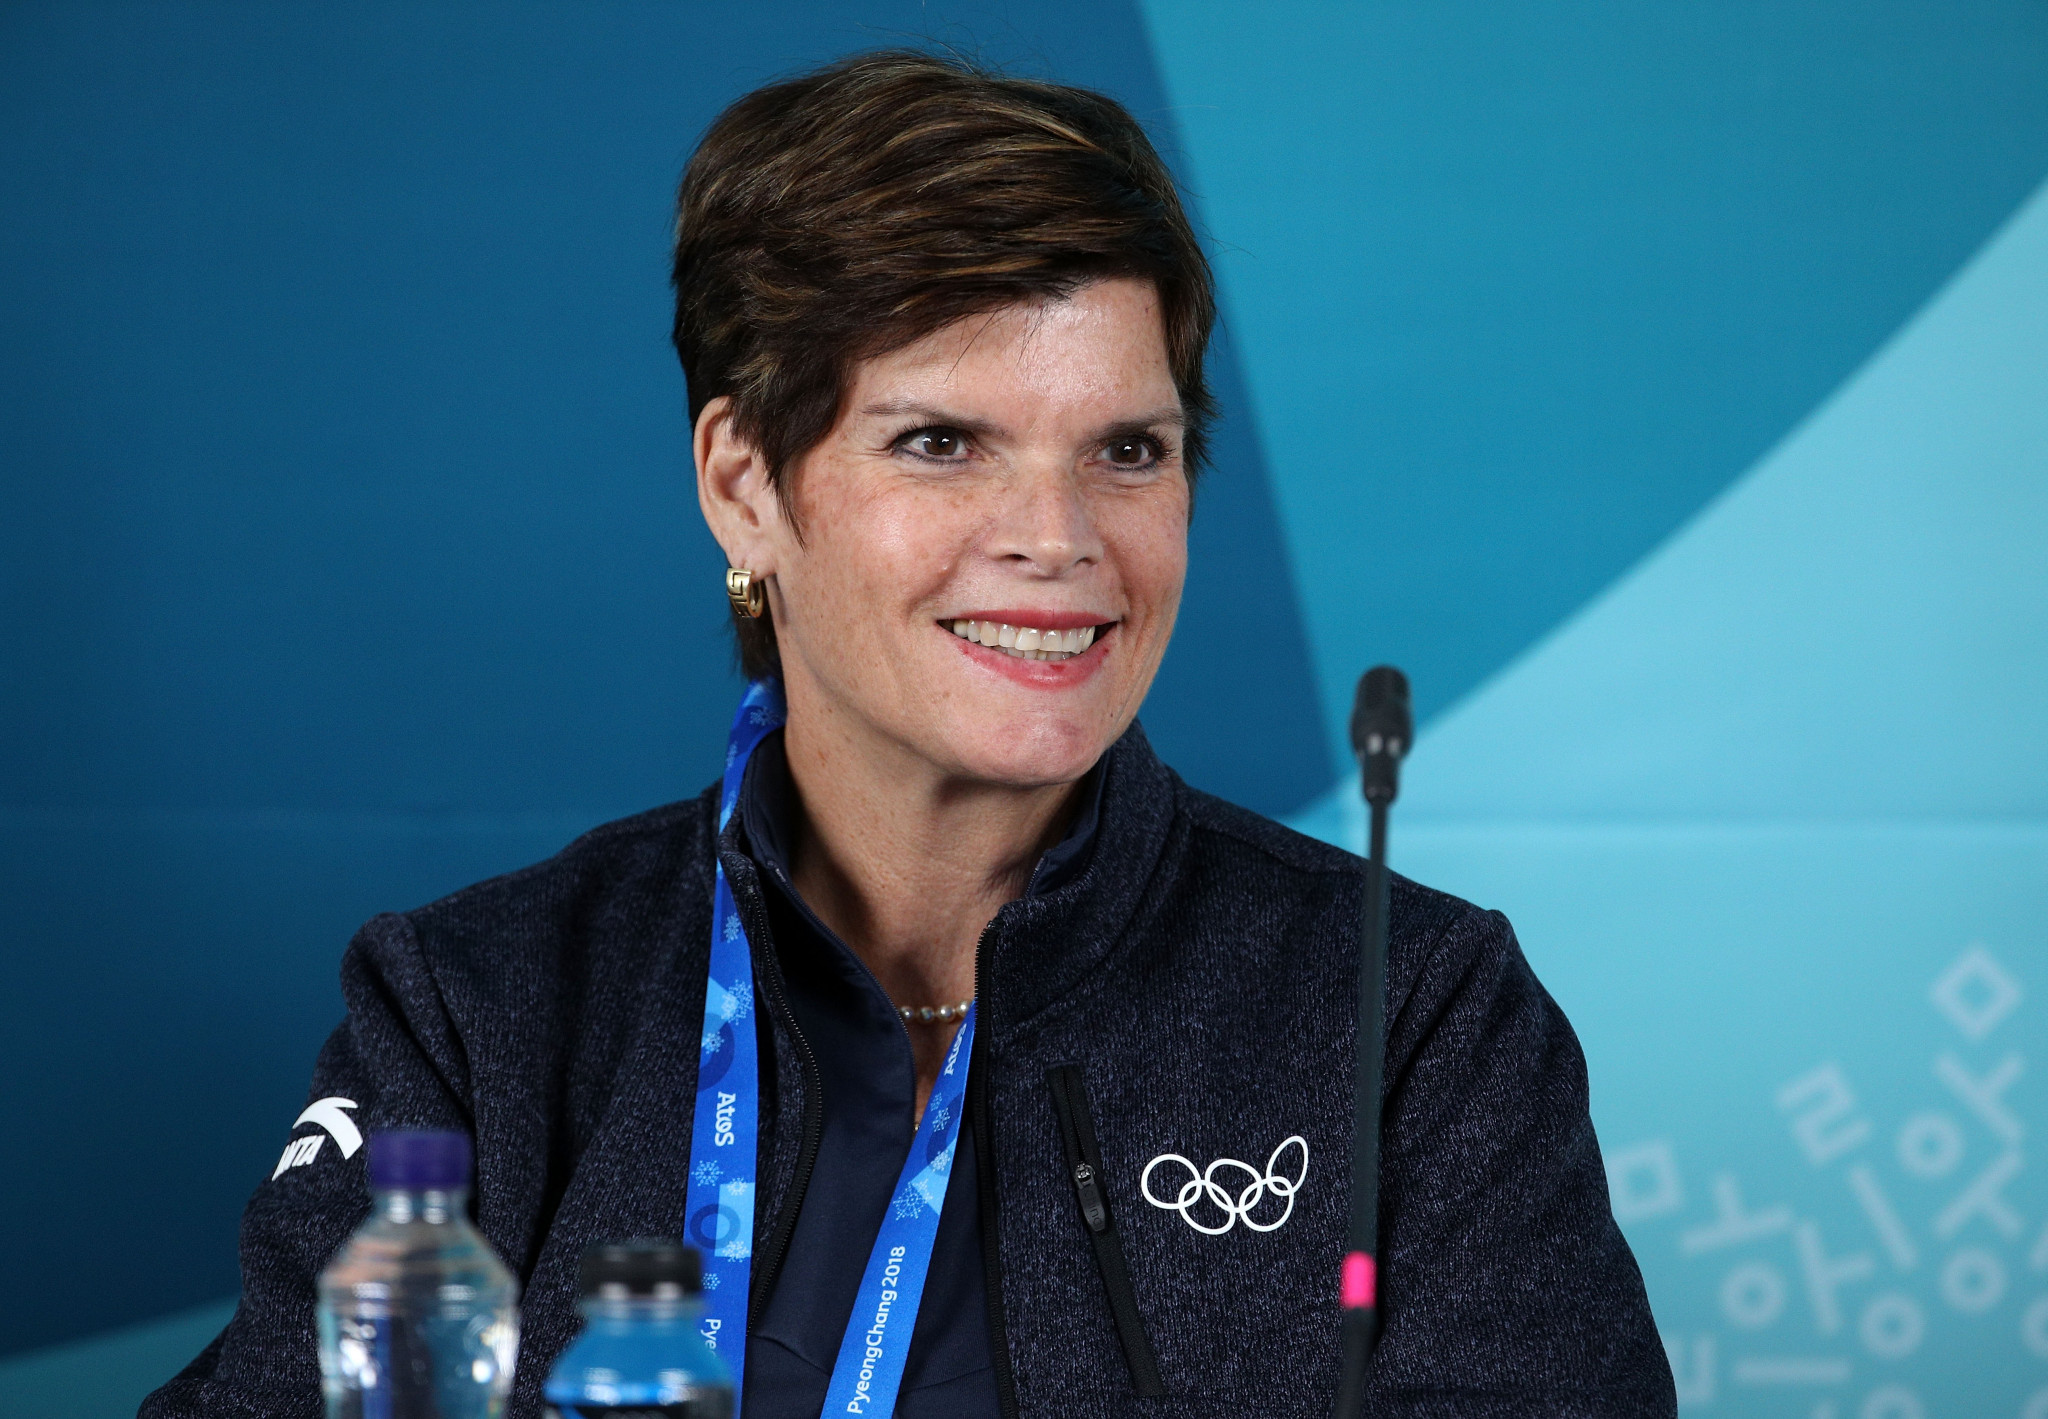 Nicole Hoevertsz has been confirmed as the sole candidate for the IOC vice-presidency ©Getty Images